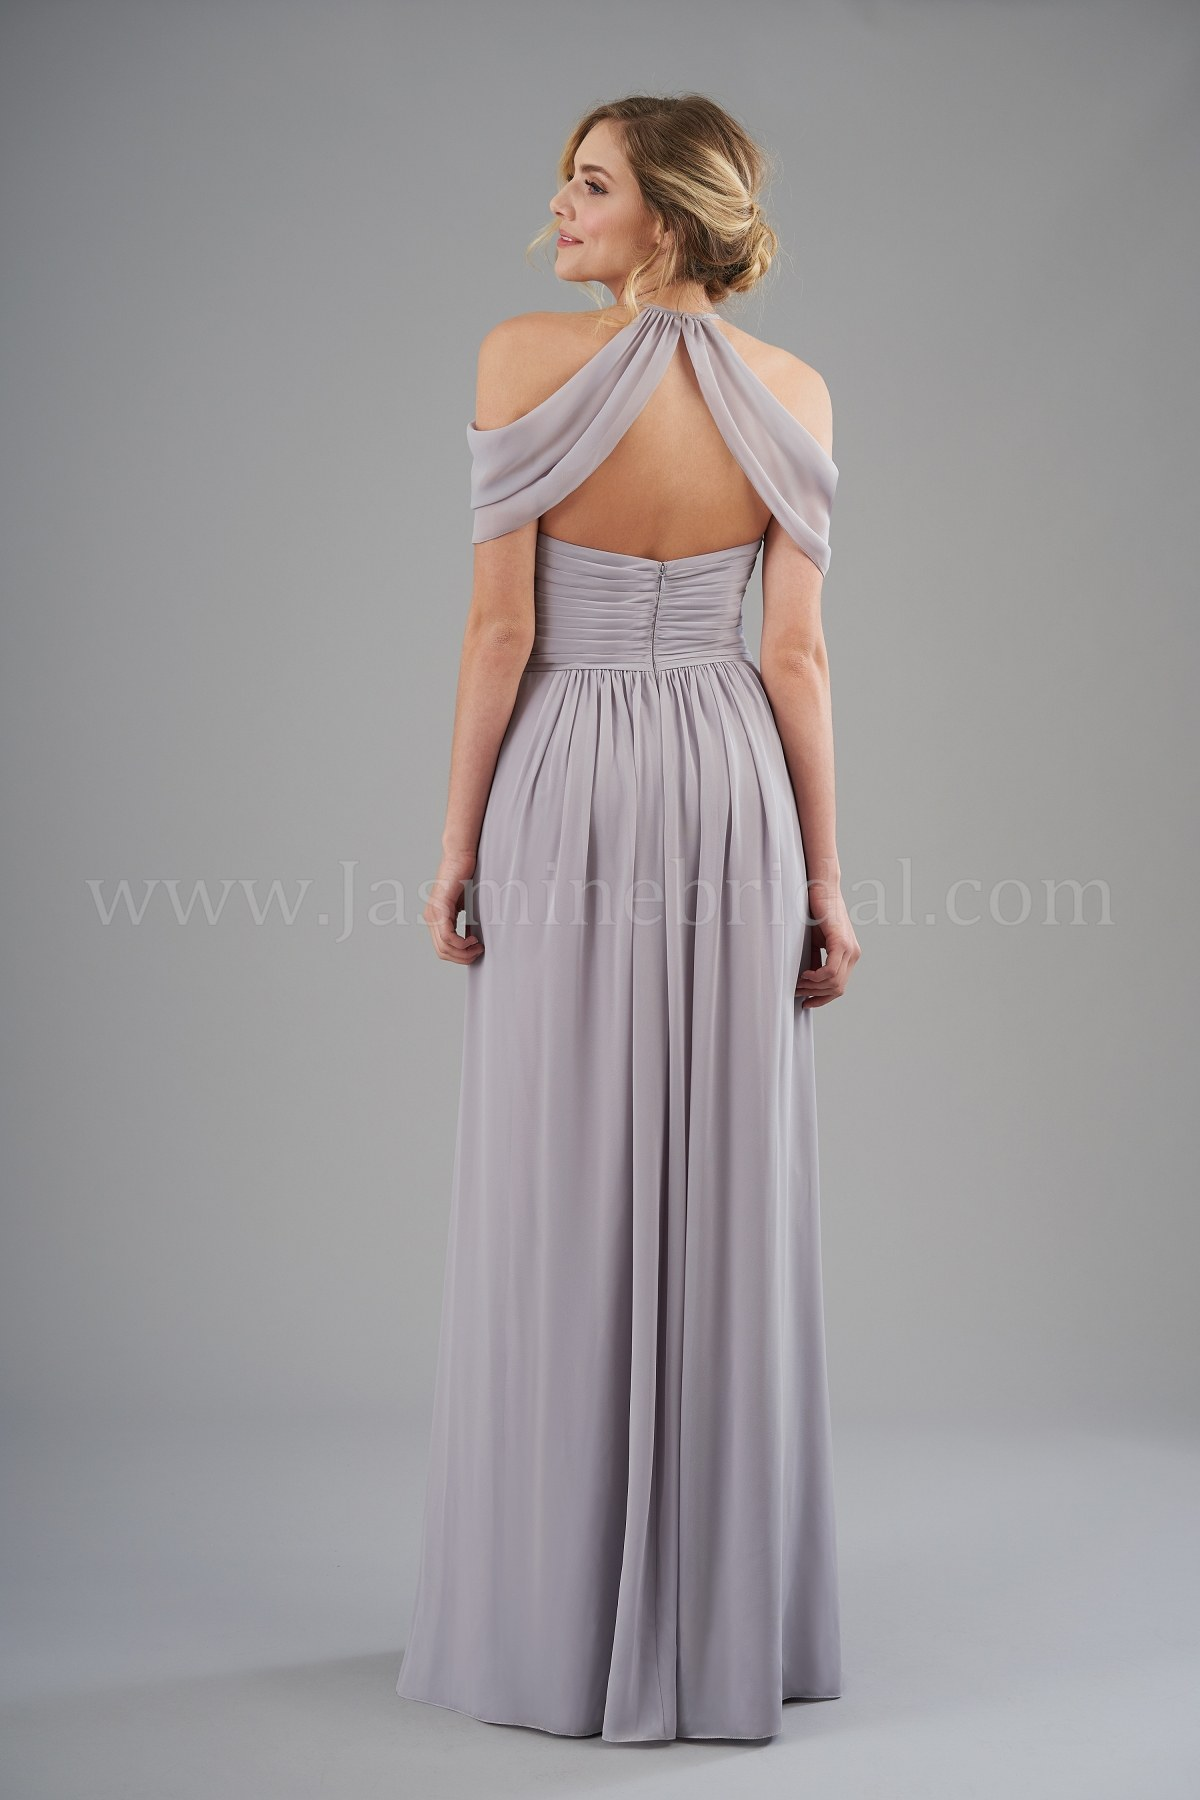 bridesmaid-dresses-B203056-B